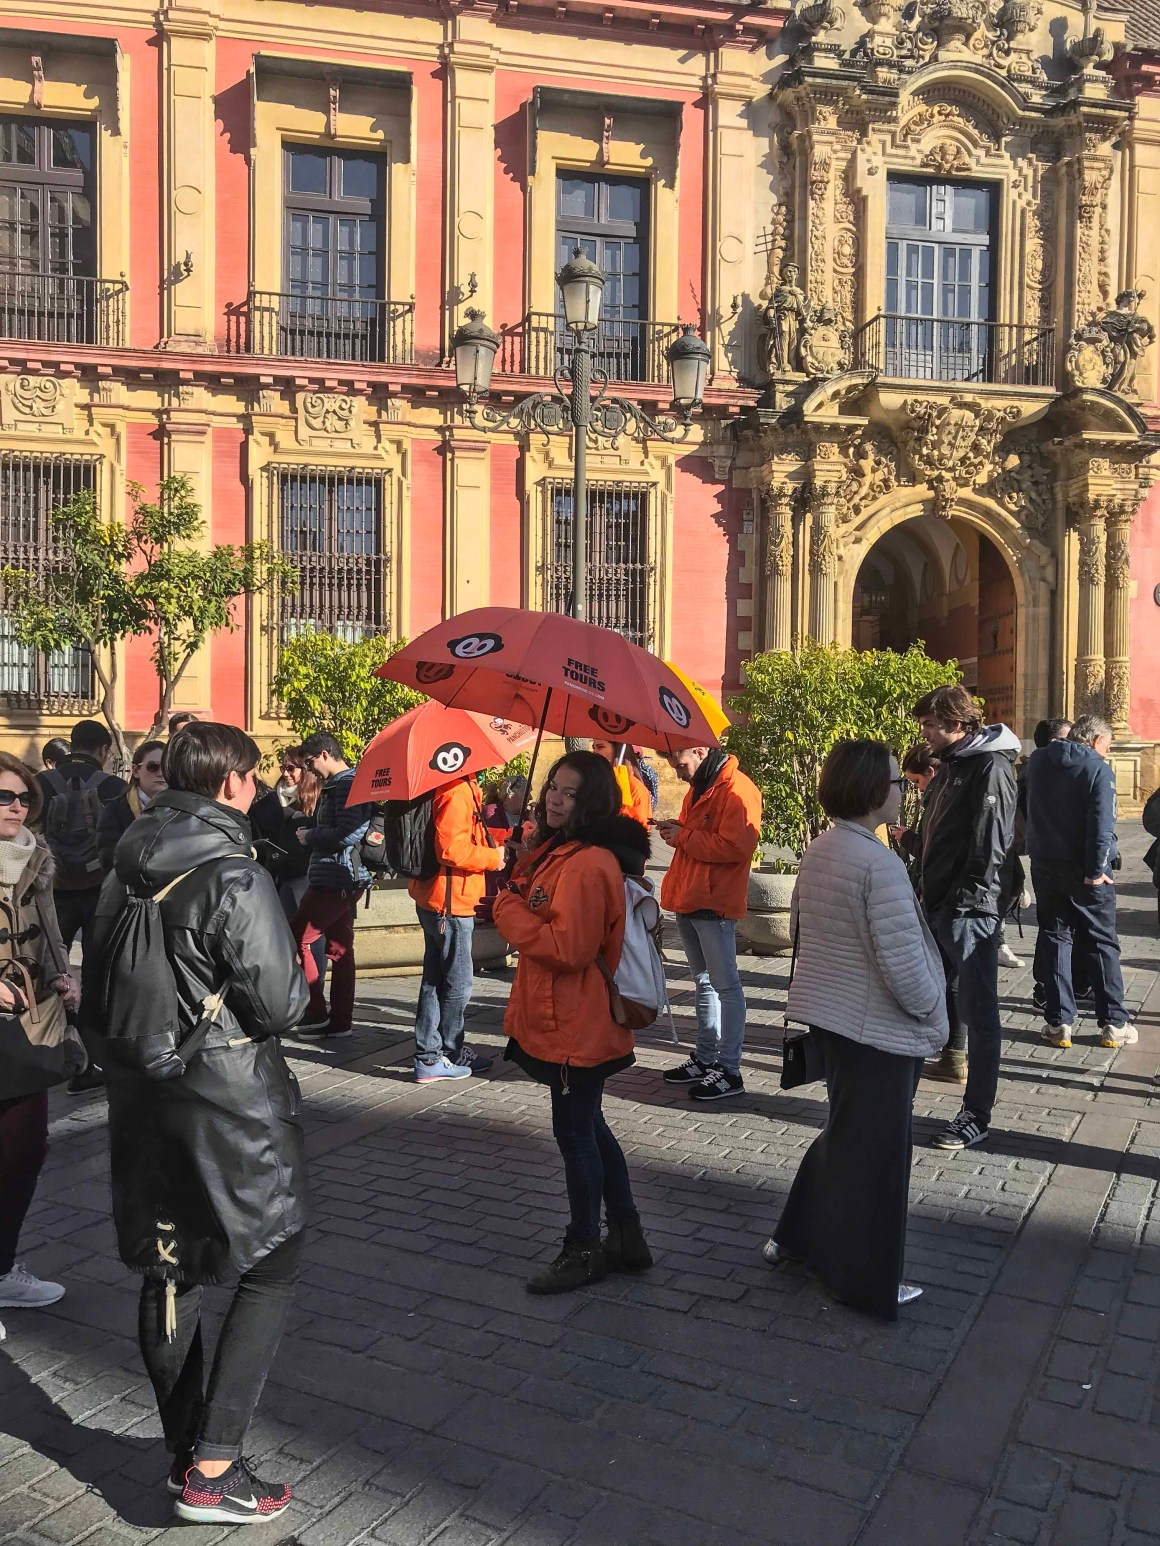 People in the streets, orange dressed girl with umbrella